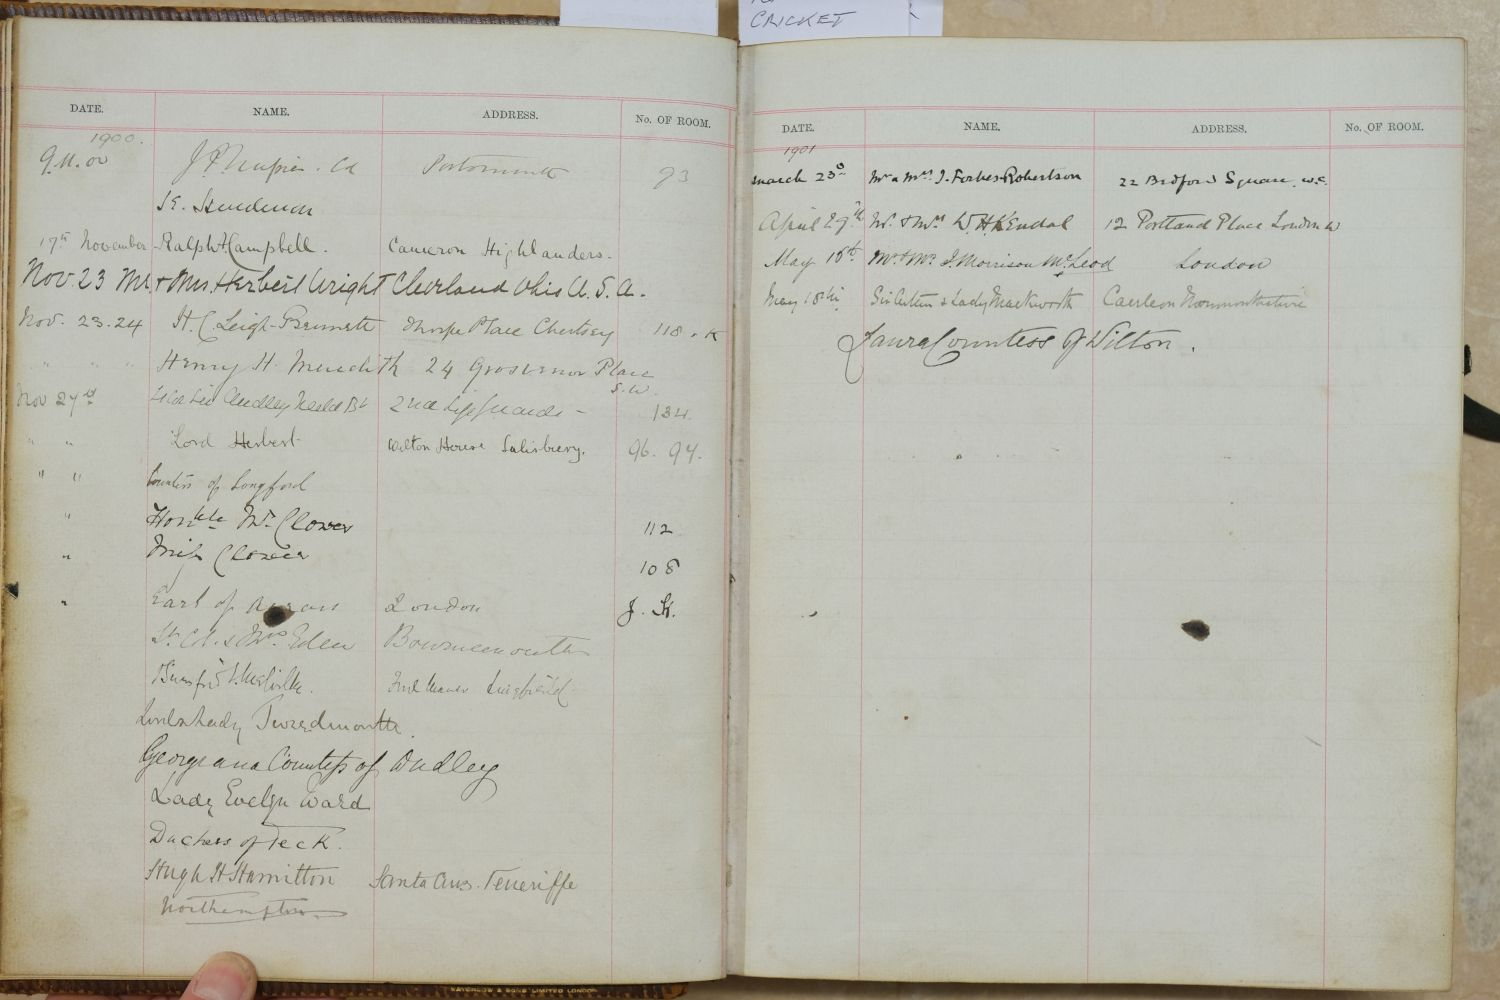 Visitors' Book. South Western Hotel, Southampton. A visitors' book, circa 1899-1912 - Image 7 of 16